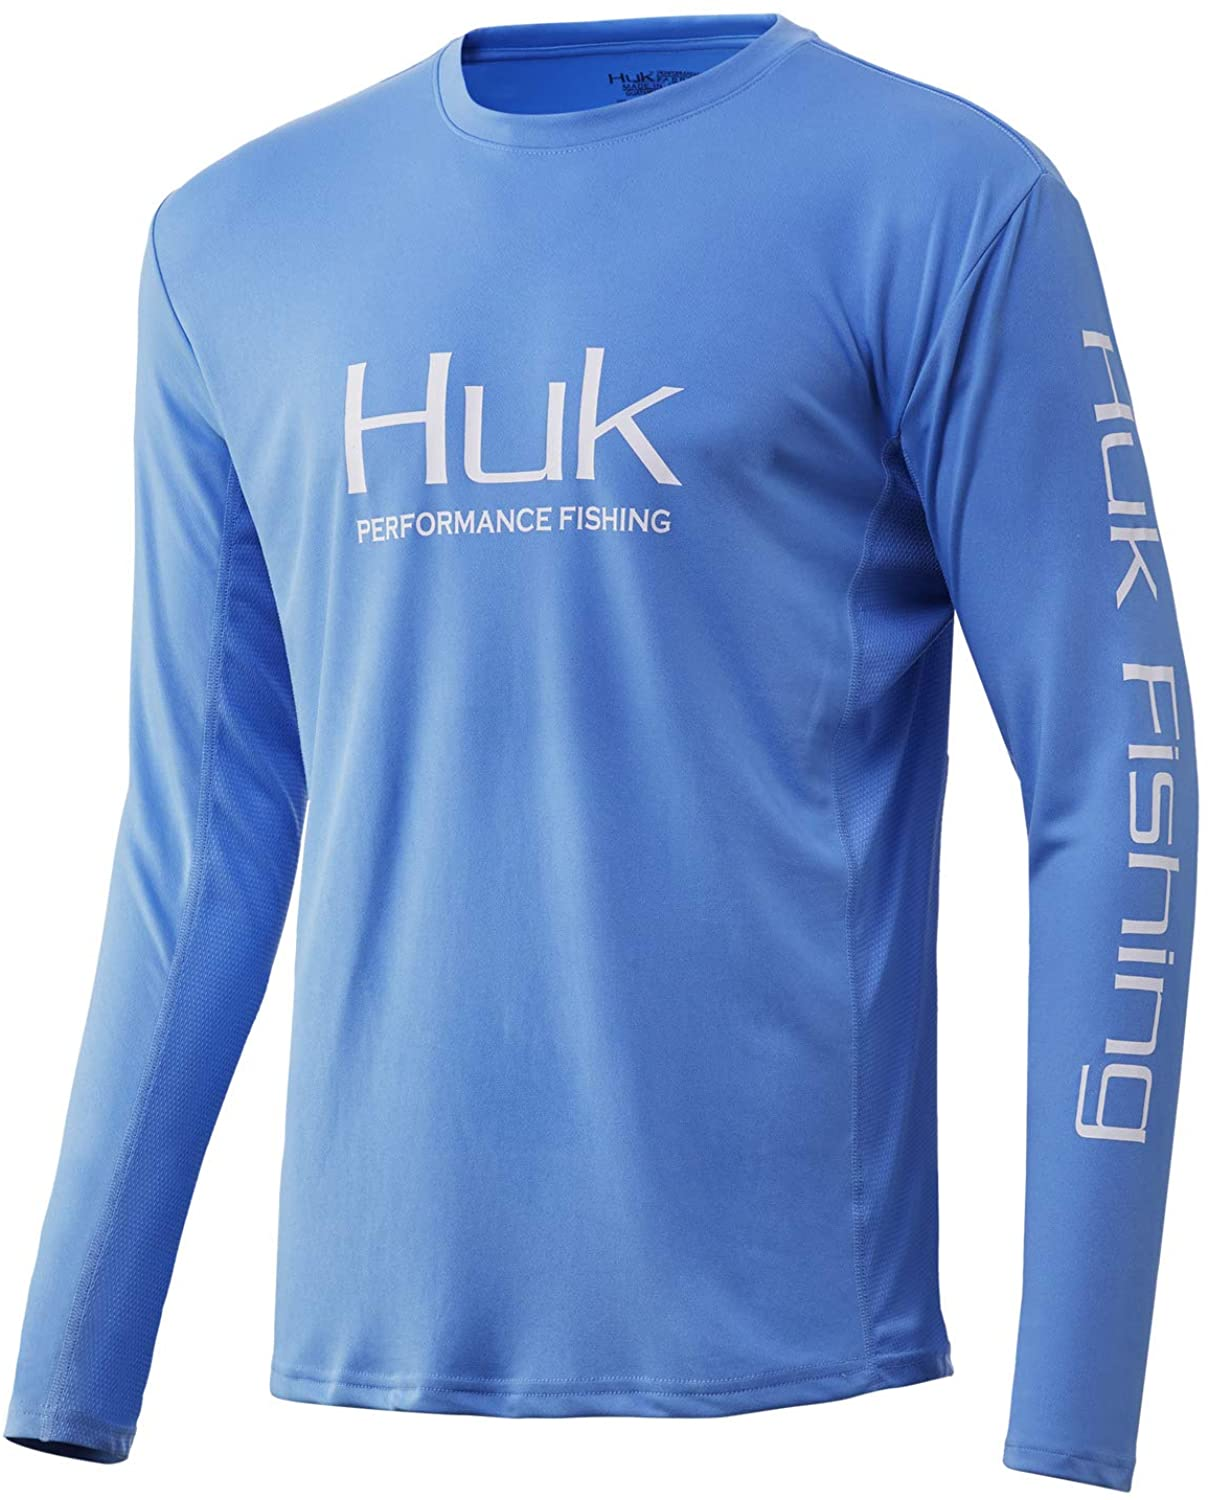 Men's Huk Icon X Long Sleeve Shirt in Carolina Blue from the front